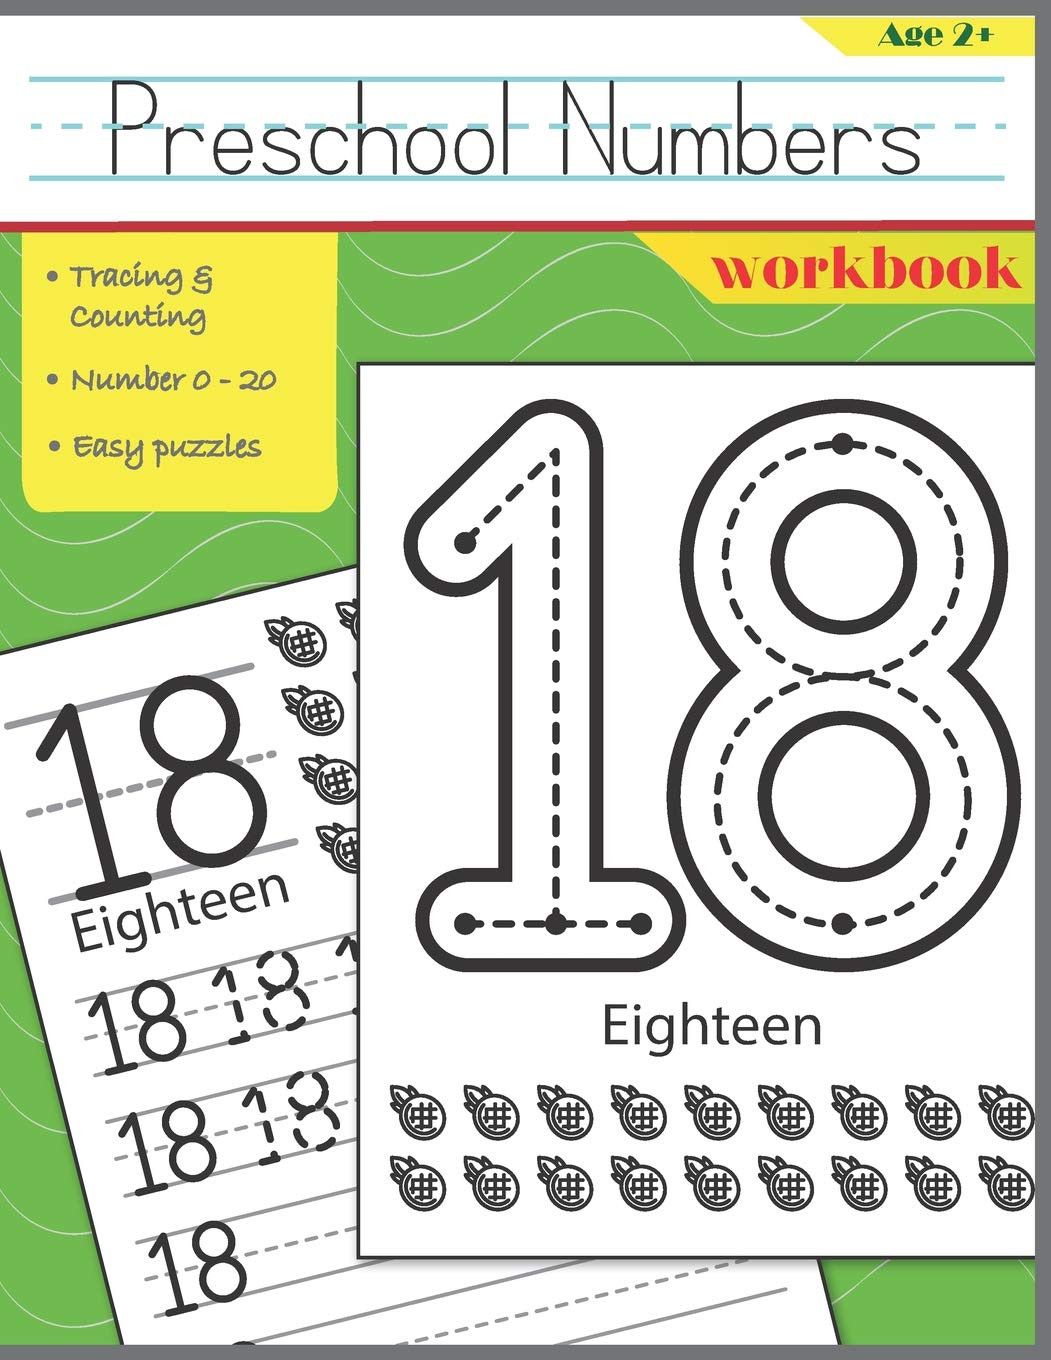 Preschool Number Tracing Preschool Numbers Workbook Handwriting Numbers & Easy